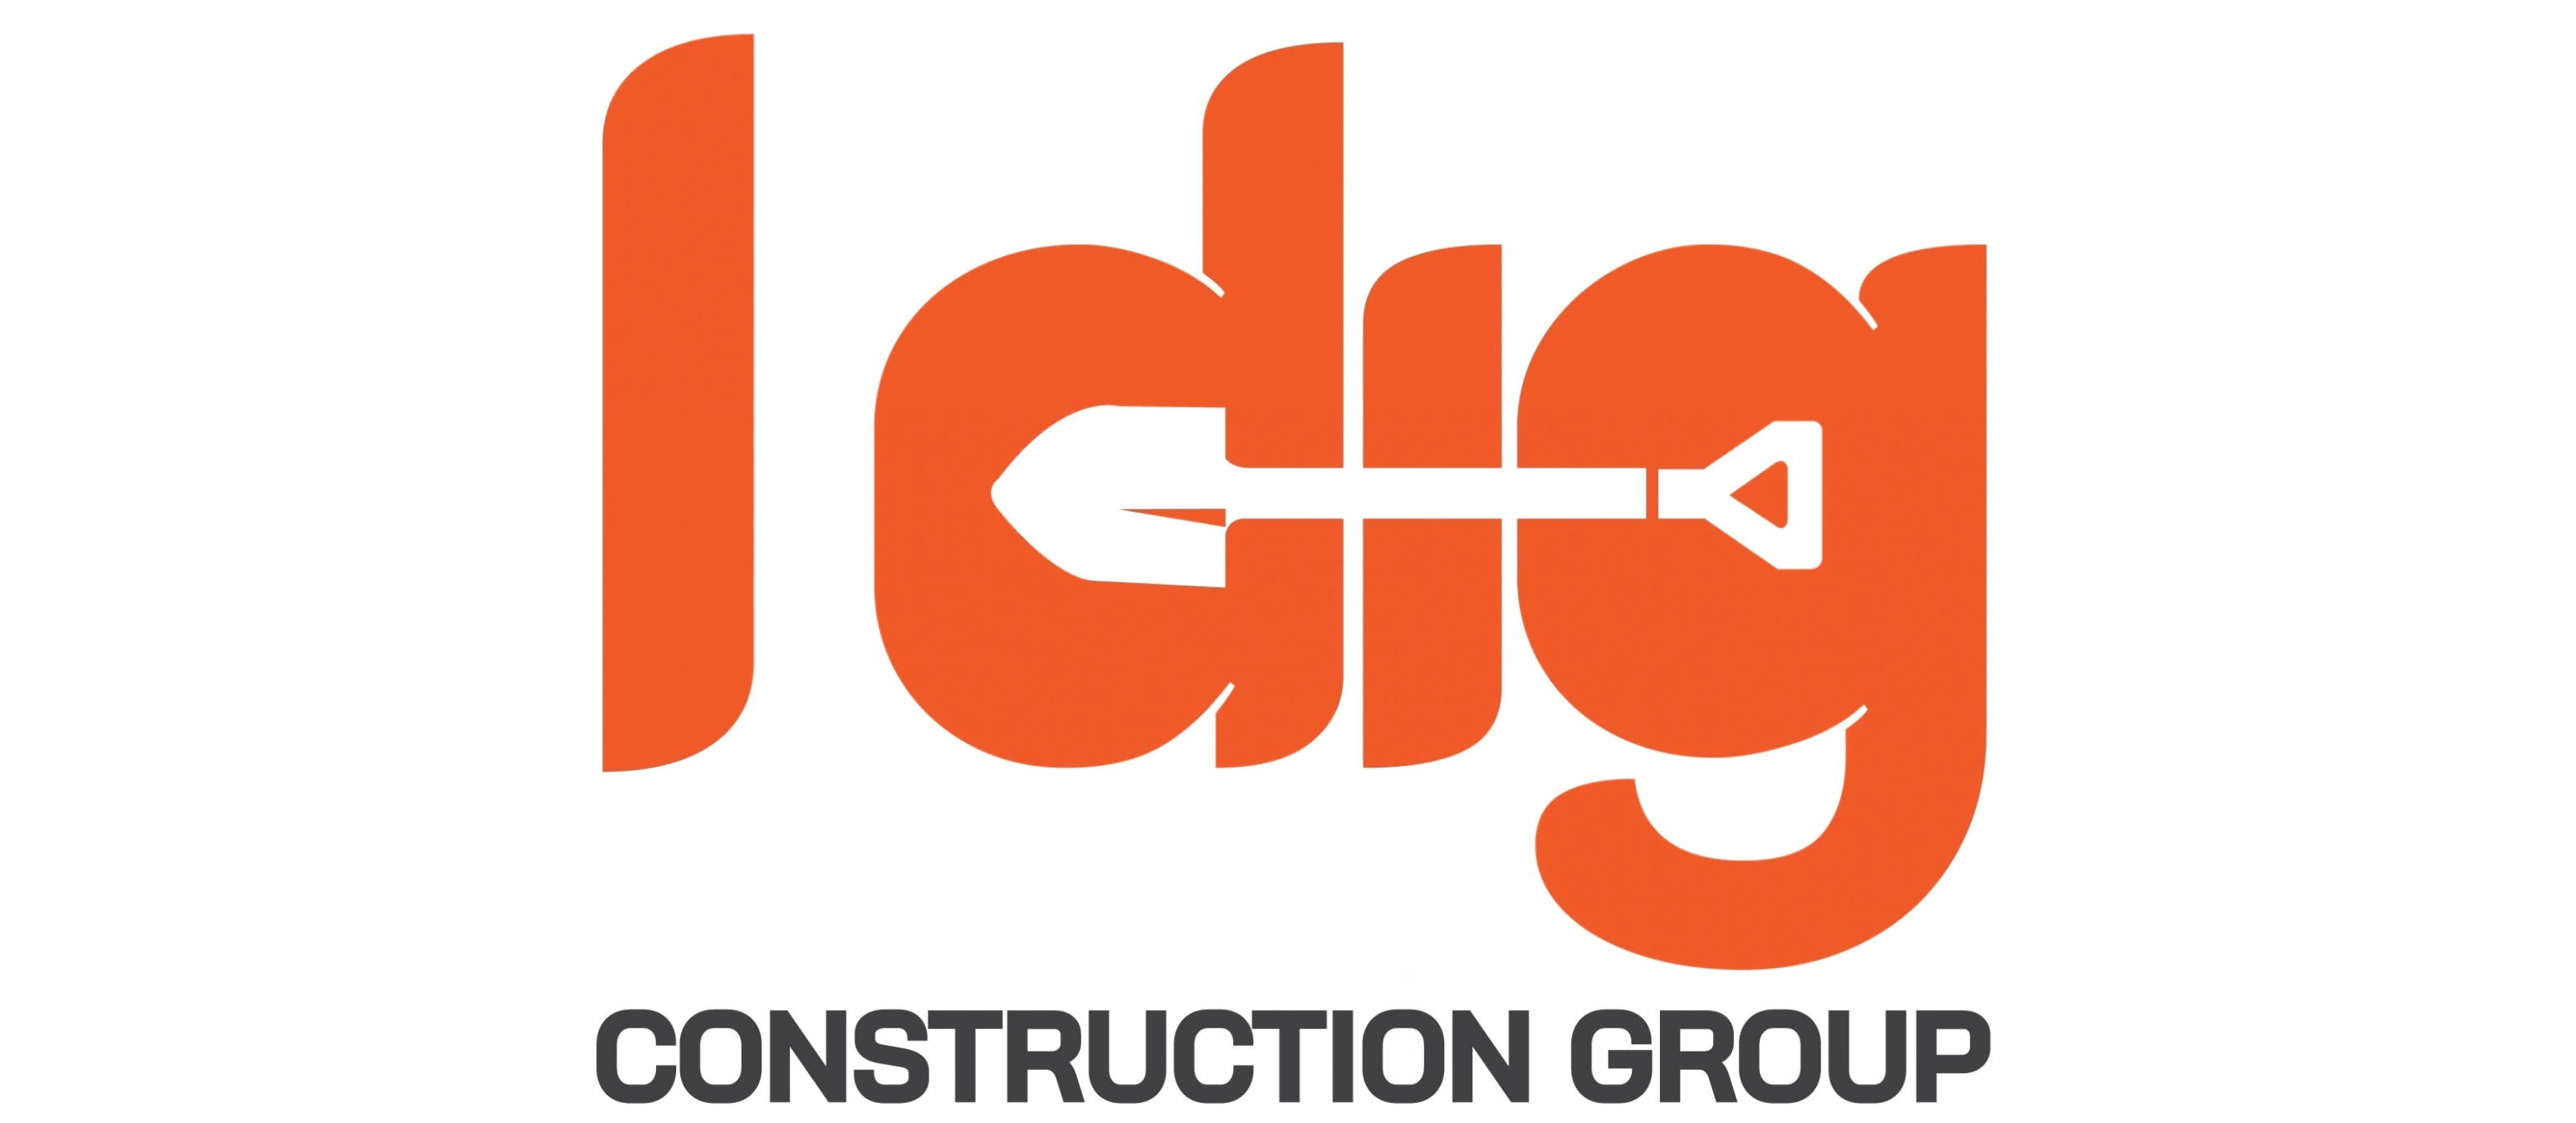 I Dig Construction Group logo